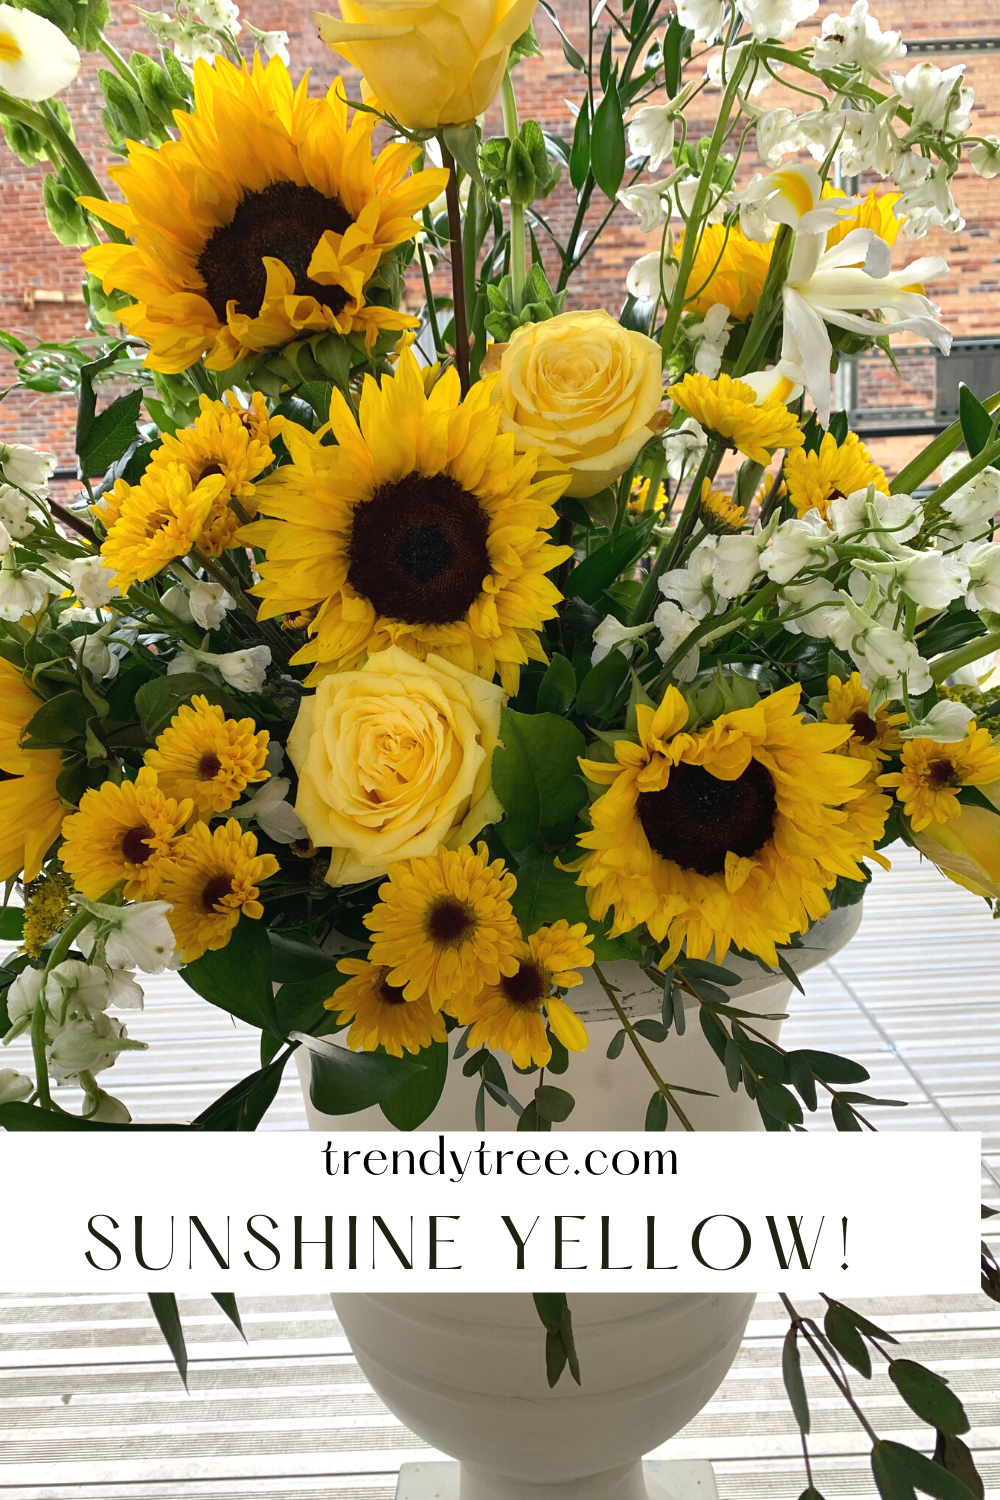 sunflowers and roses together